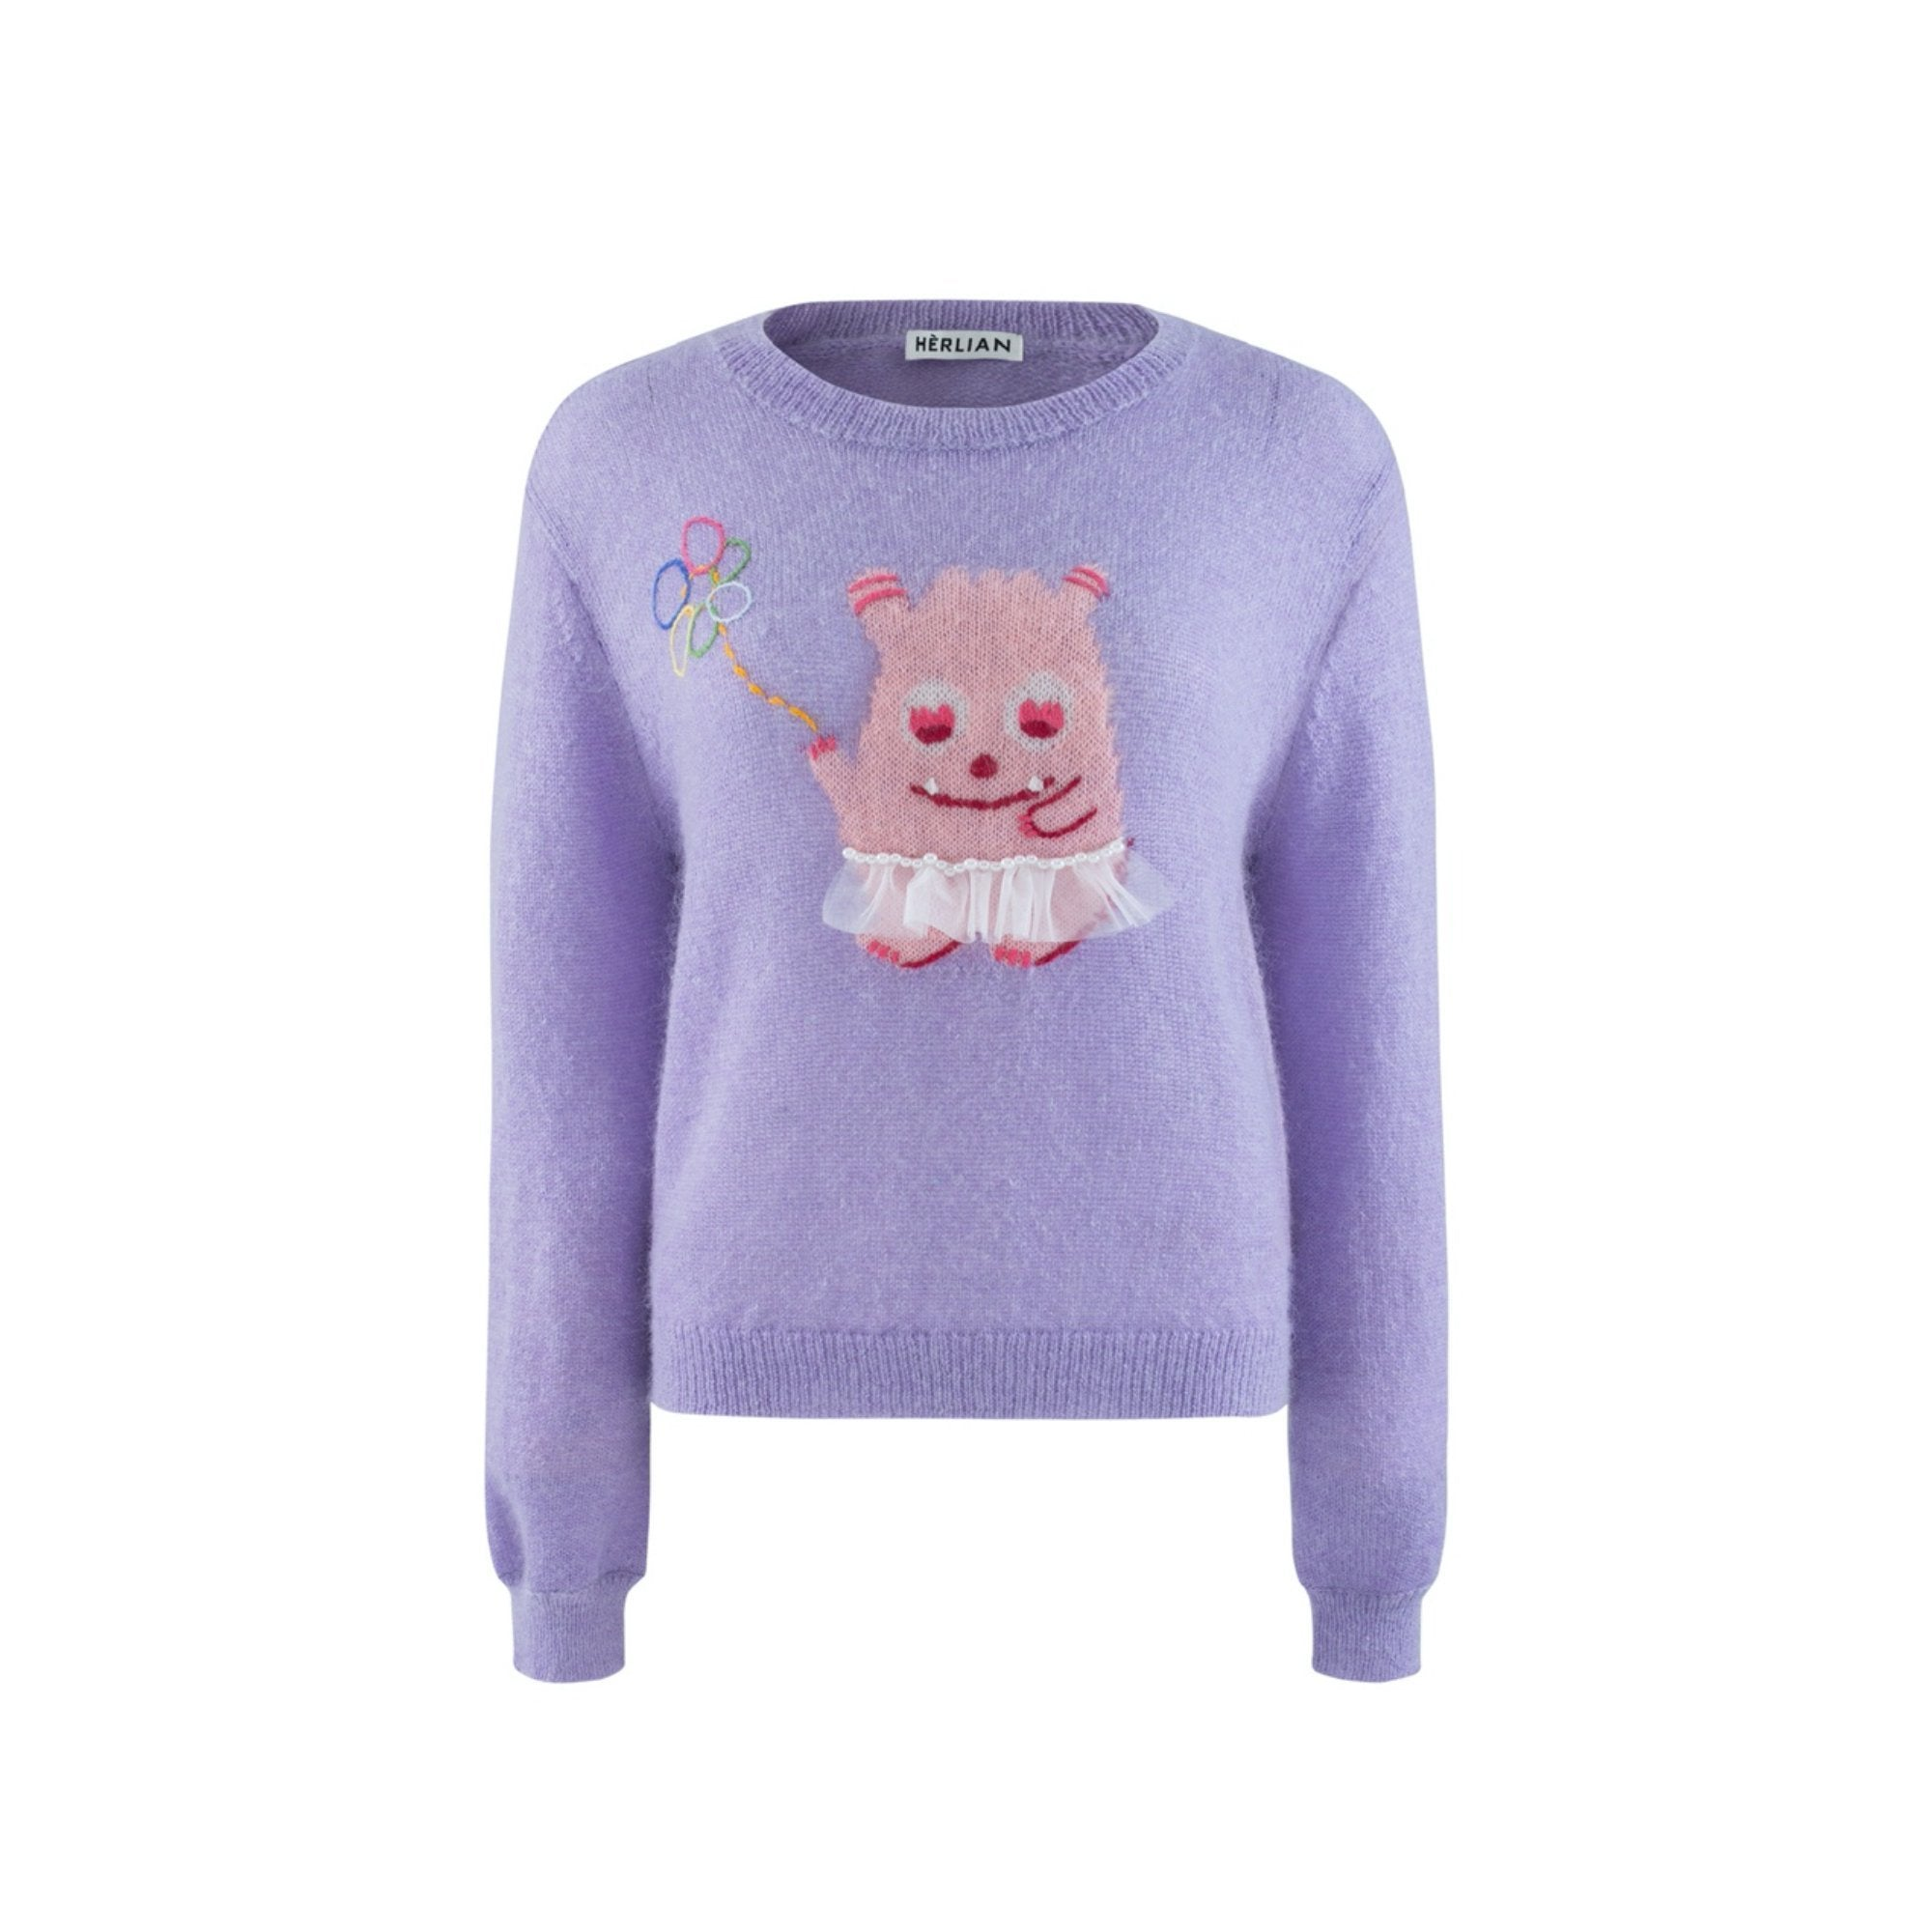 HERLIAN Purple Little Monster Sweatshirt | MADA IN CHINA